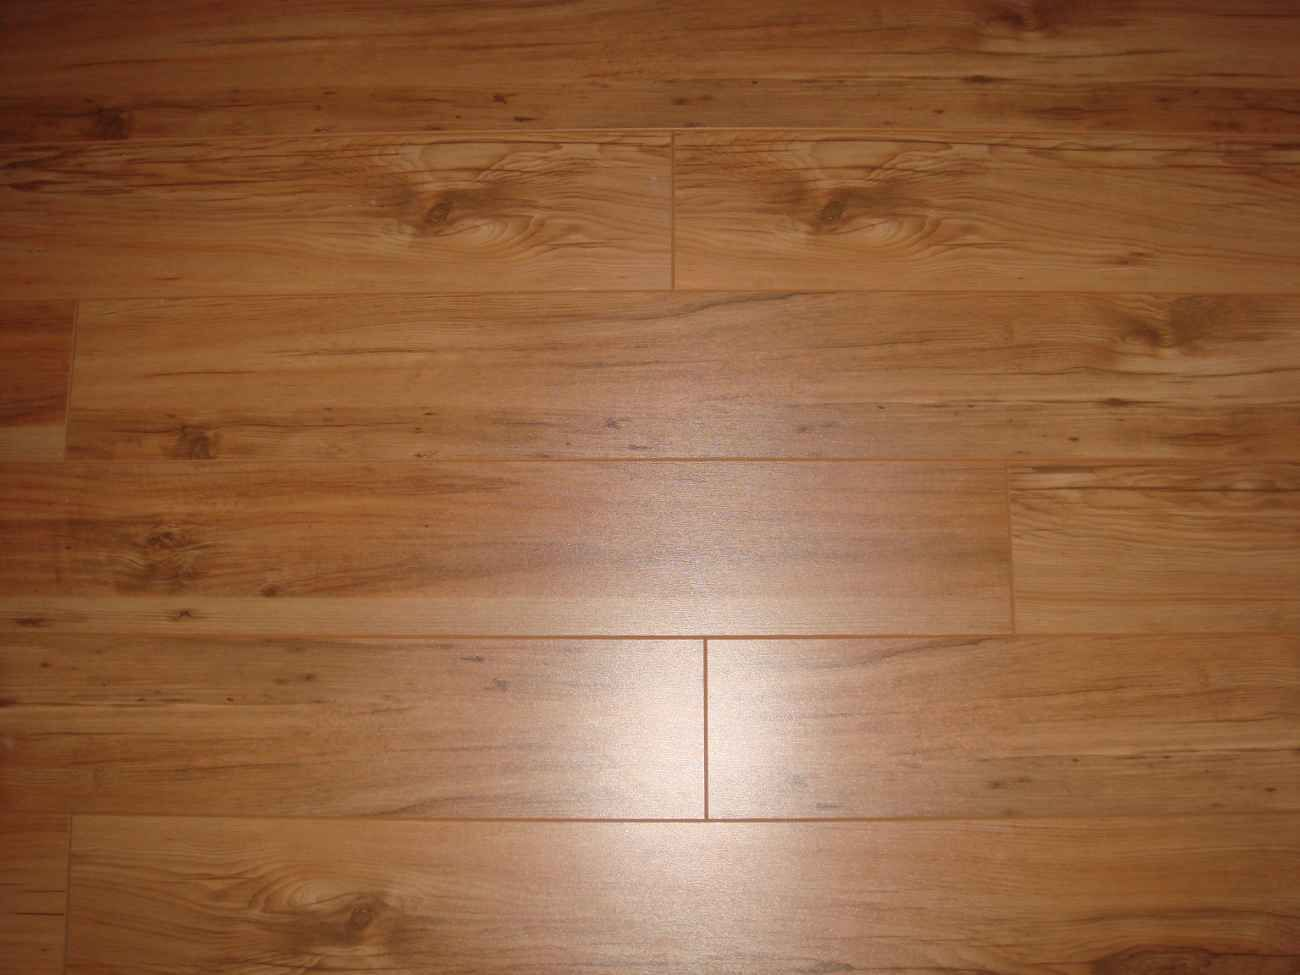 tile that looks like wood   Searchya   Search Results Yahoo Search ...